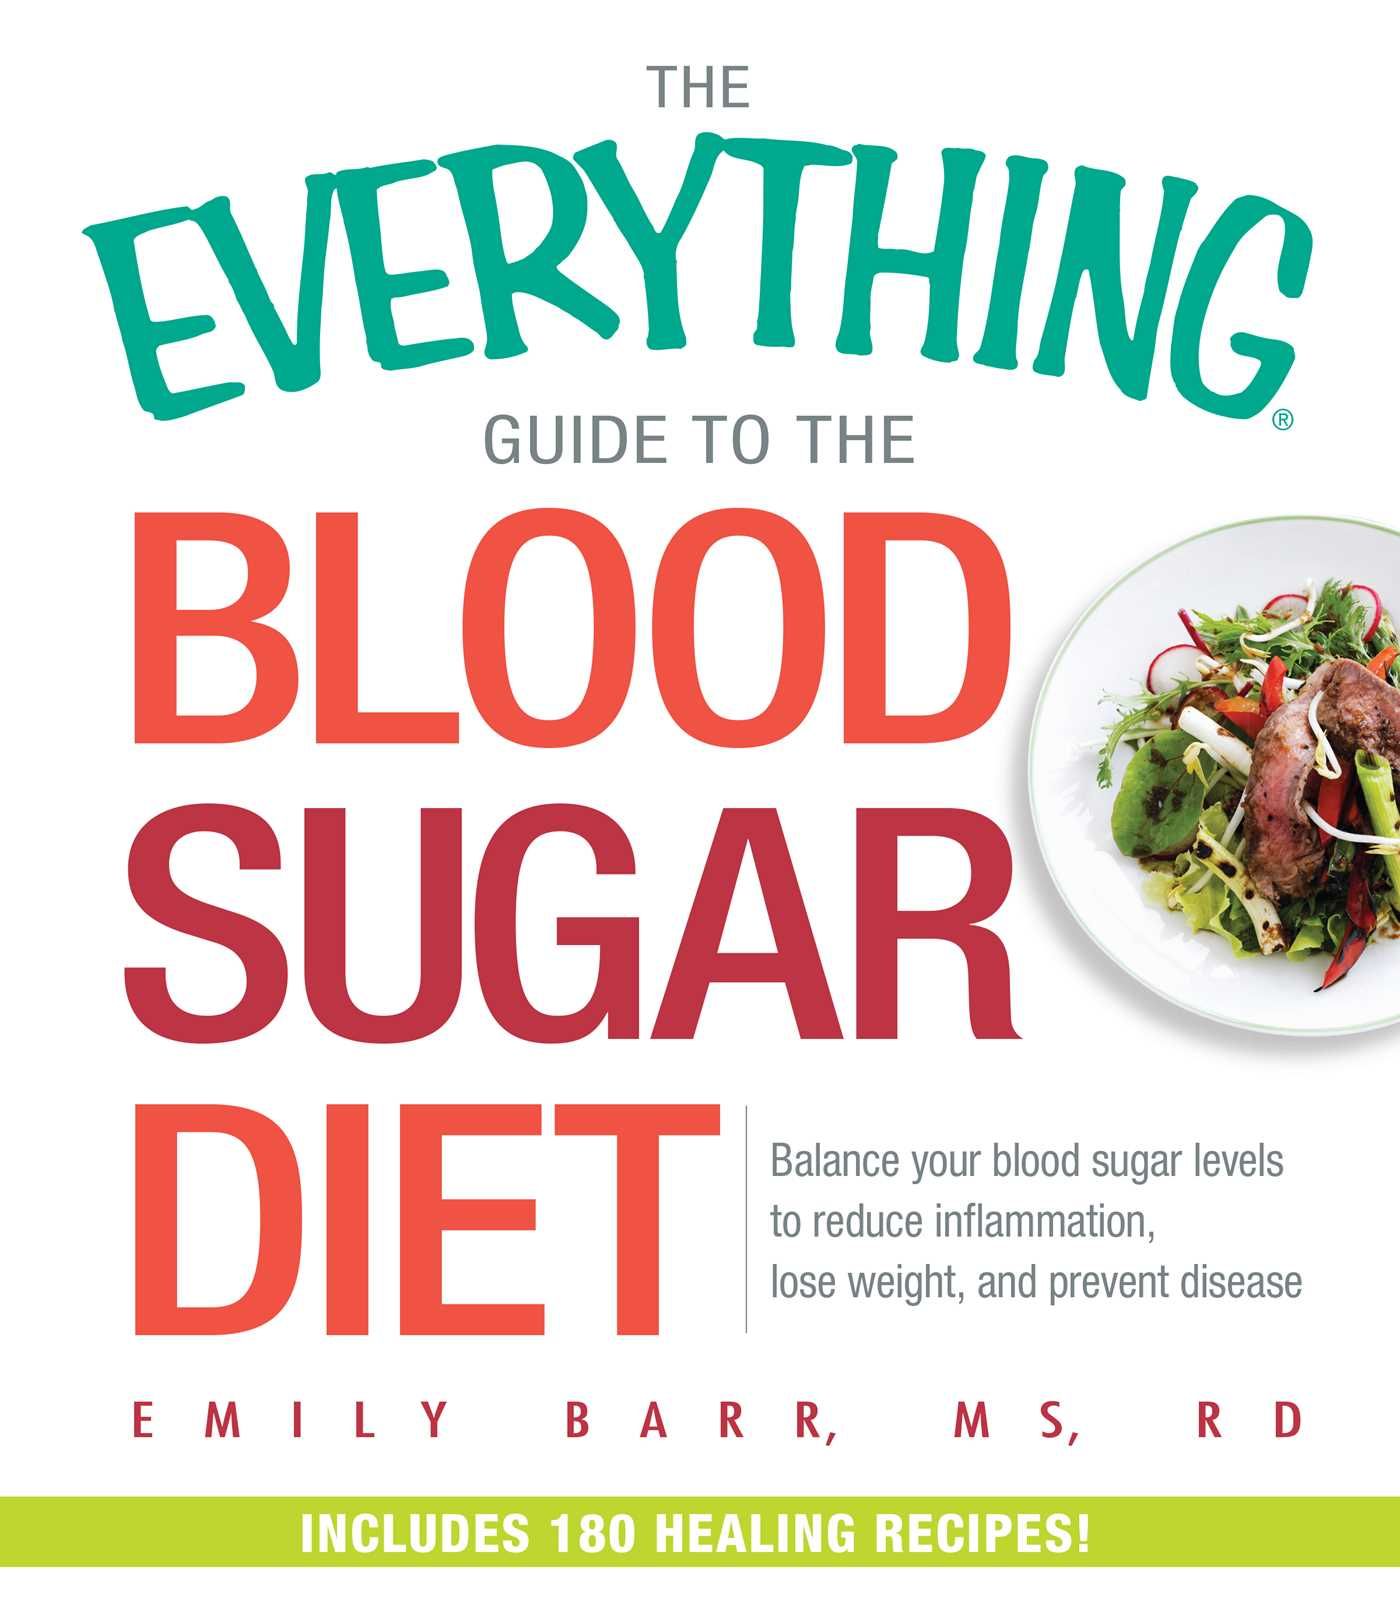 The everything guide to the blood sugar diet book by emily barr the everything guide to the blood sugar diet 9781440592553 hr forumfinder Image collections